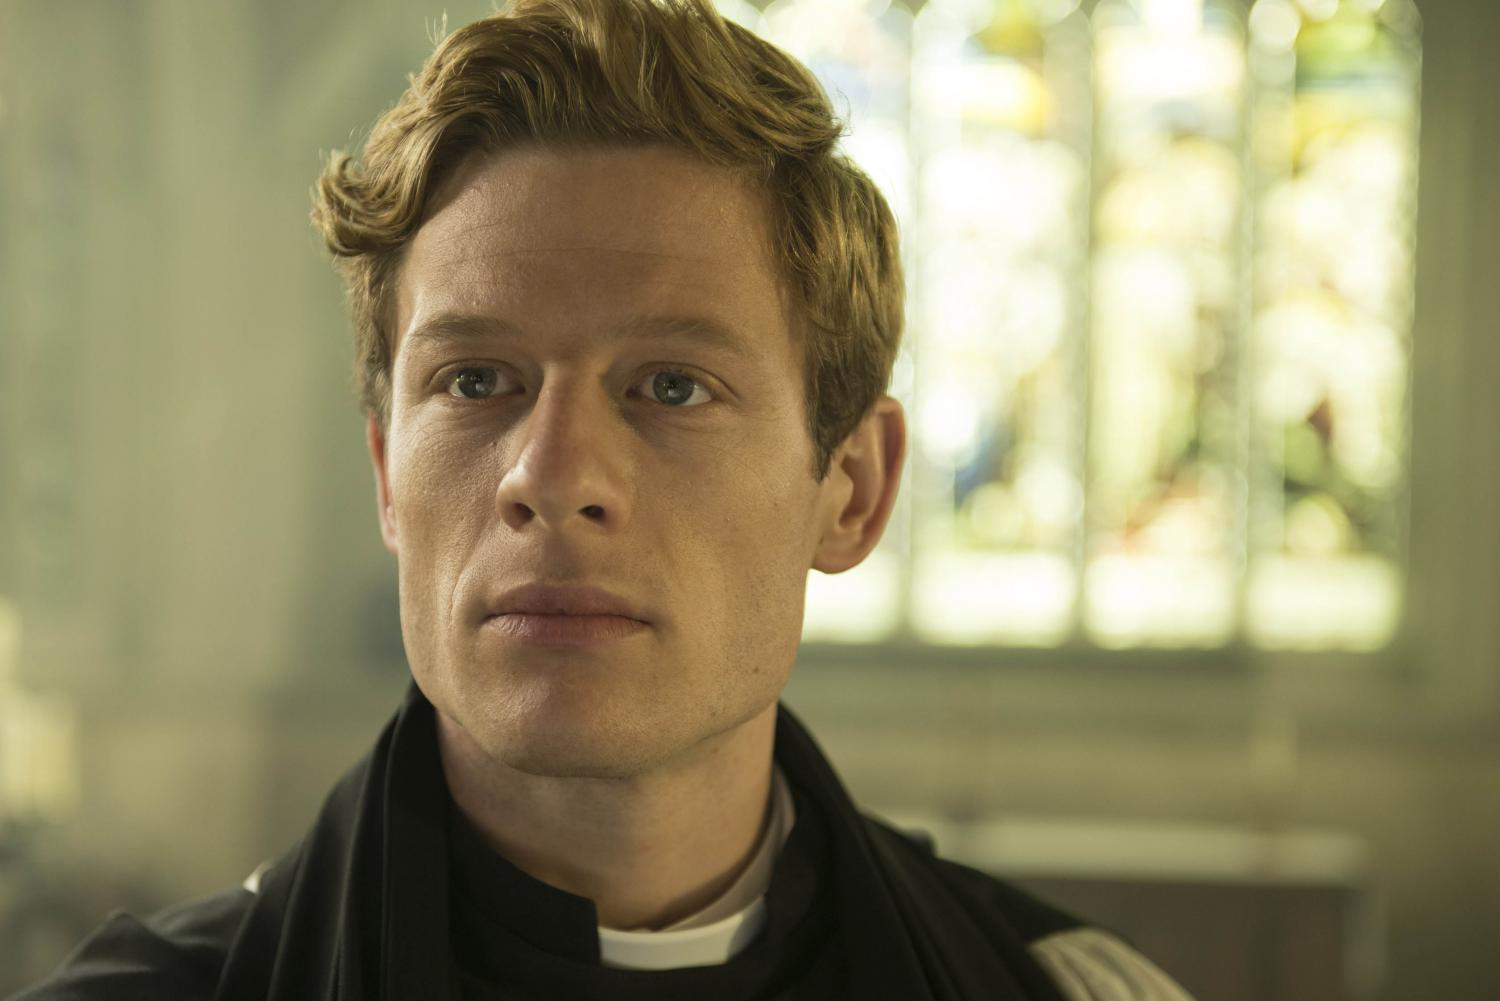 james norton rushjames norton instagram, james norton black mirror, james norton vk, james norton gif, james norton tumblr, james norton 2016, james norton viking, james norton show, james norton bond, james norton imdb, james norton 2017, james norton interview, james norton filmography, james norton cole, james norton rush, james norton producer, james norton in bonobo, james norton news, james norton and robson green, james norton photographer